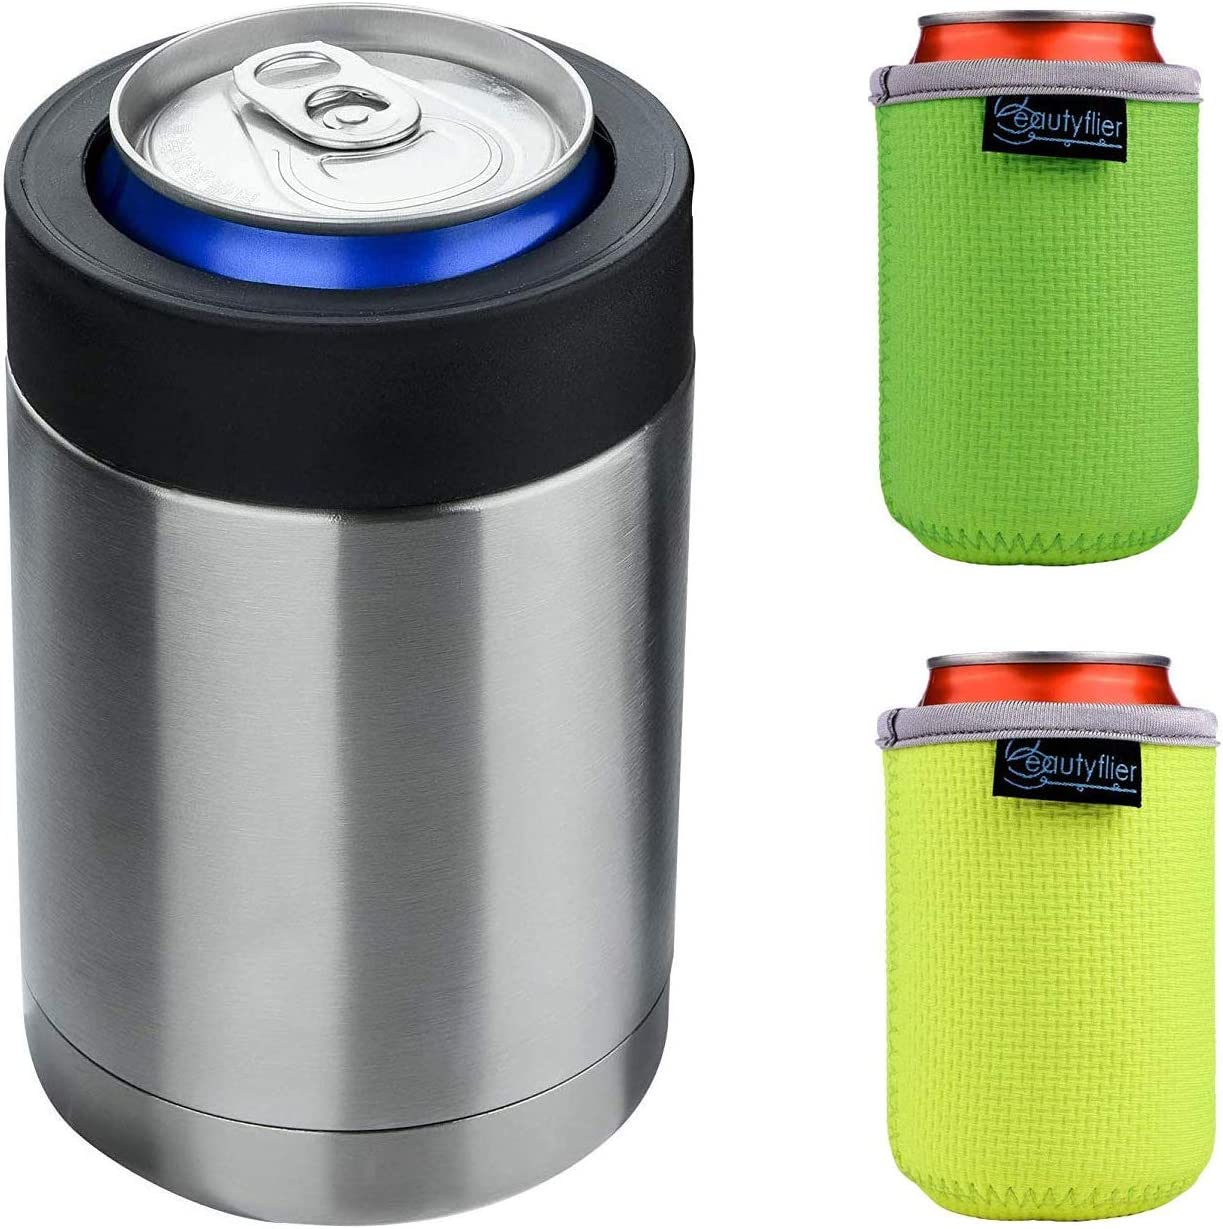 Beautyflier 12 oz Stainless Steel Vacuum Insulated Can Cooler Beer Holder + 2 Pieces Neoprene Can Sleeve Fits Standard 12oz Beverage Can &Beer Bottles